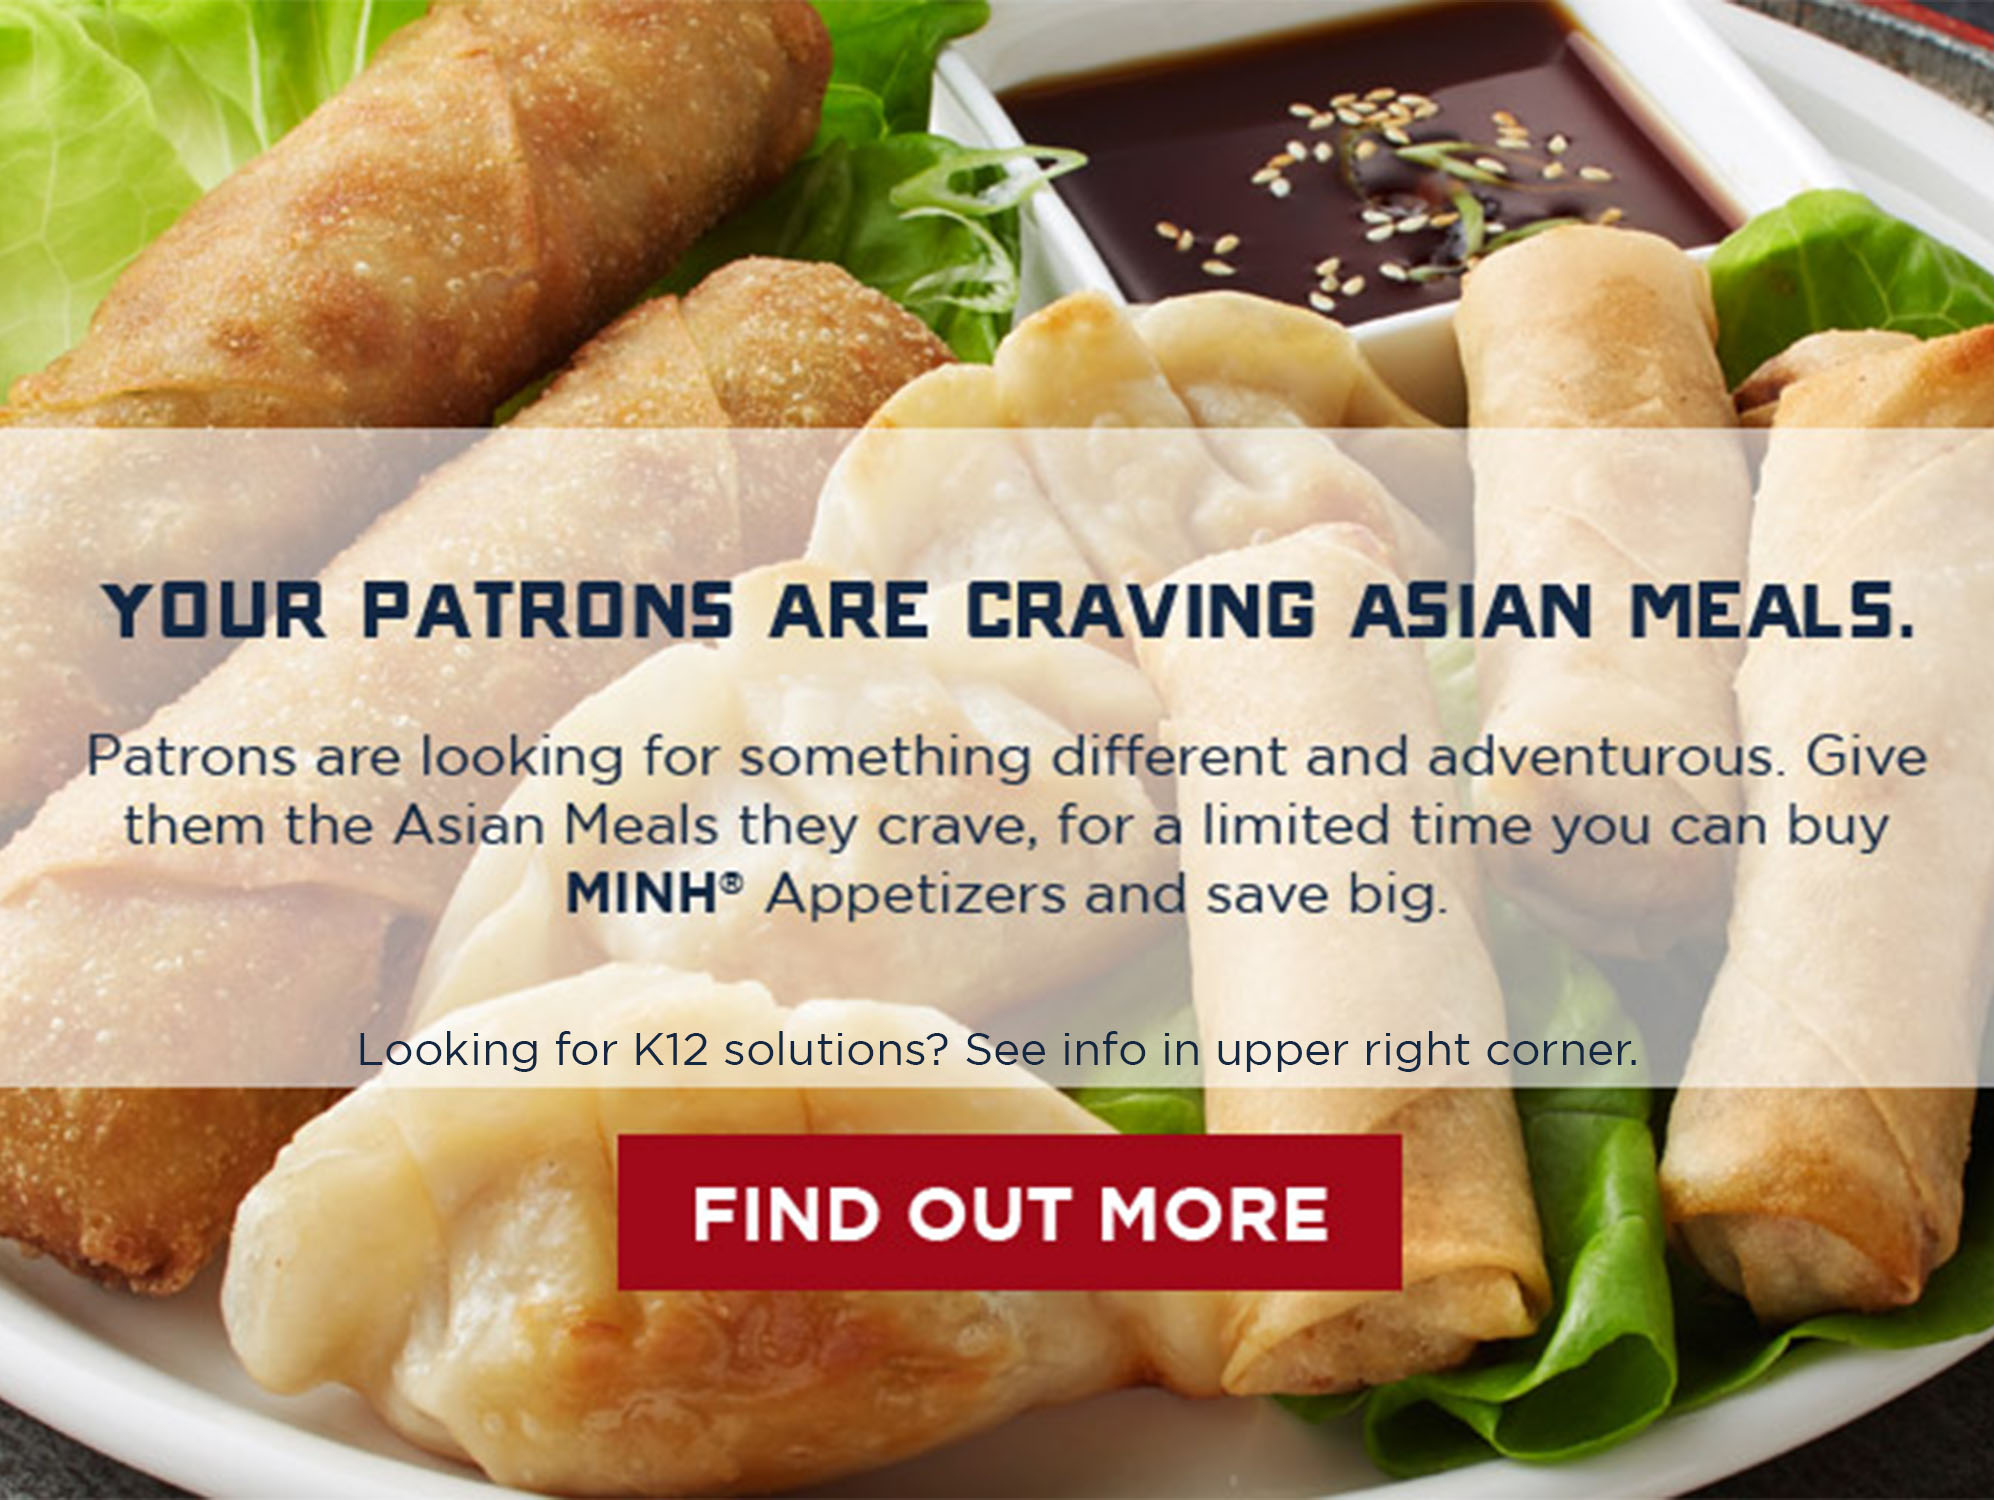 Minh Appetizers